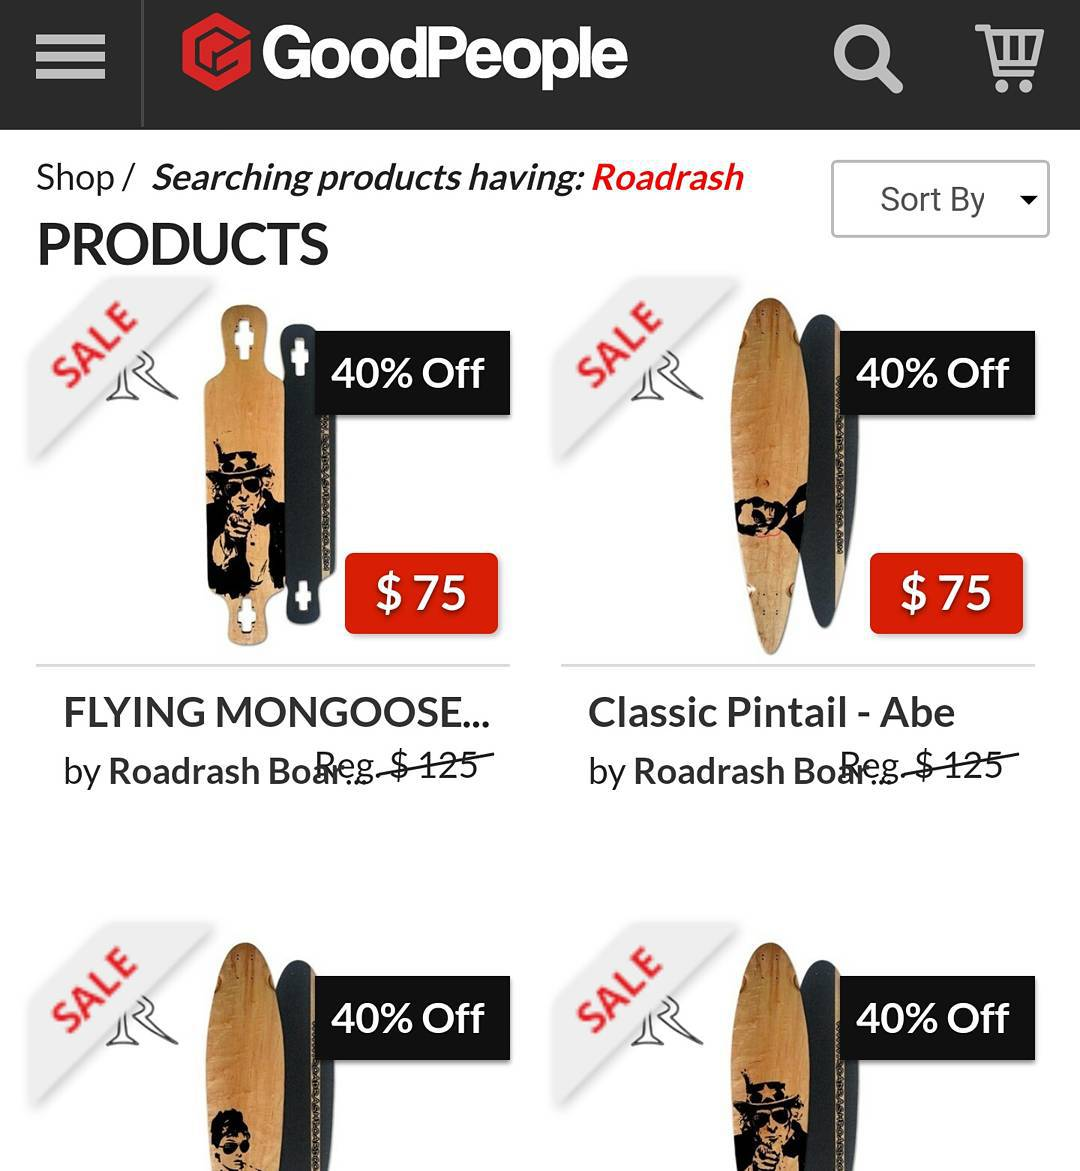 Check out our sale on goodpeople.com! Pick up sweet deck today!